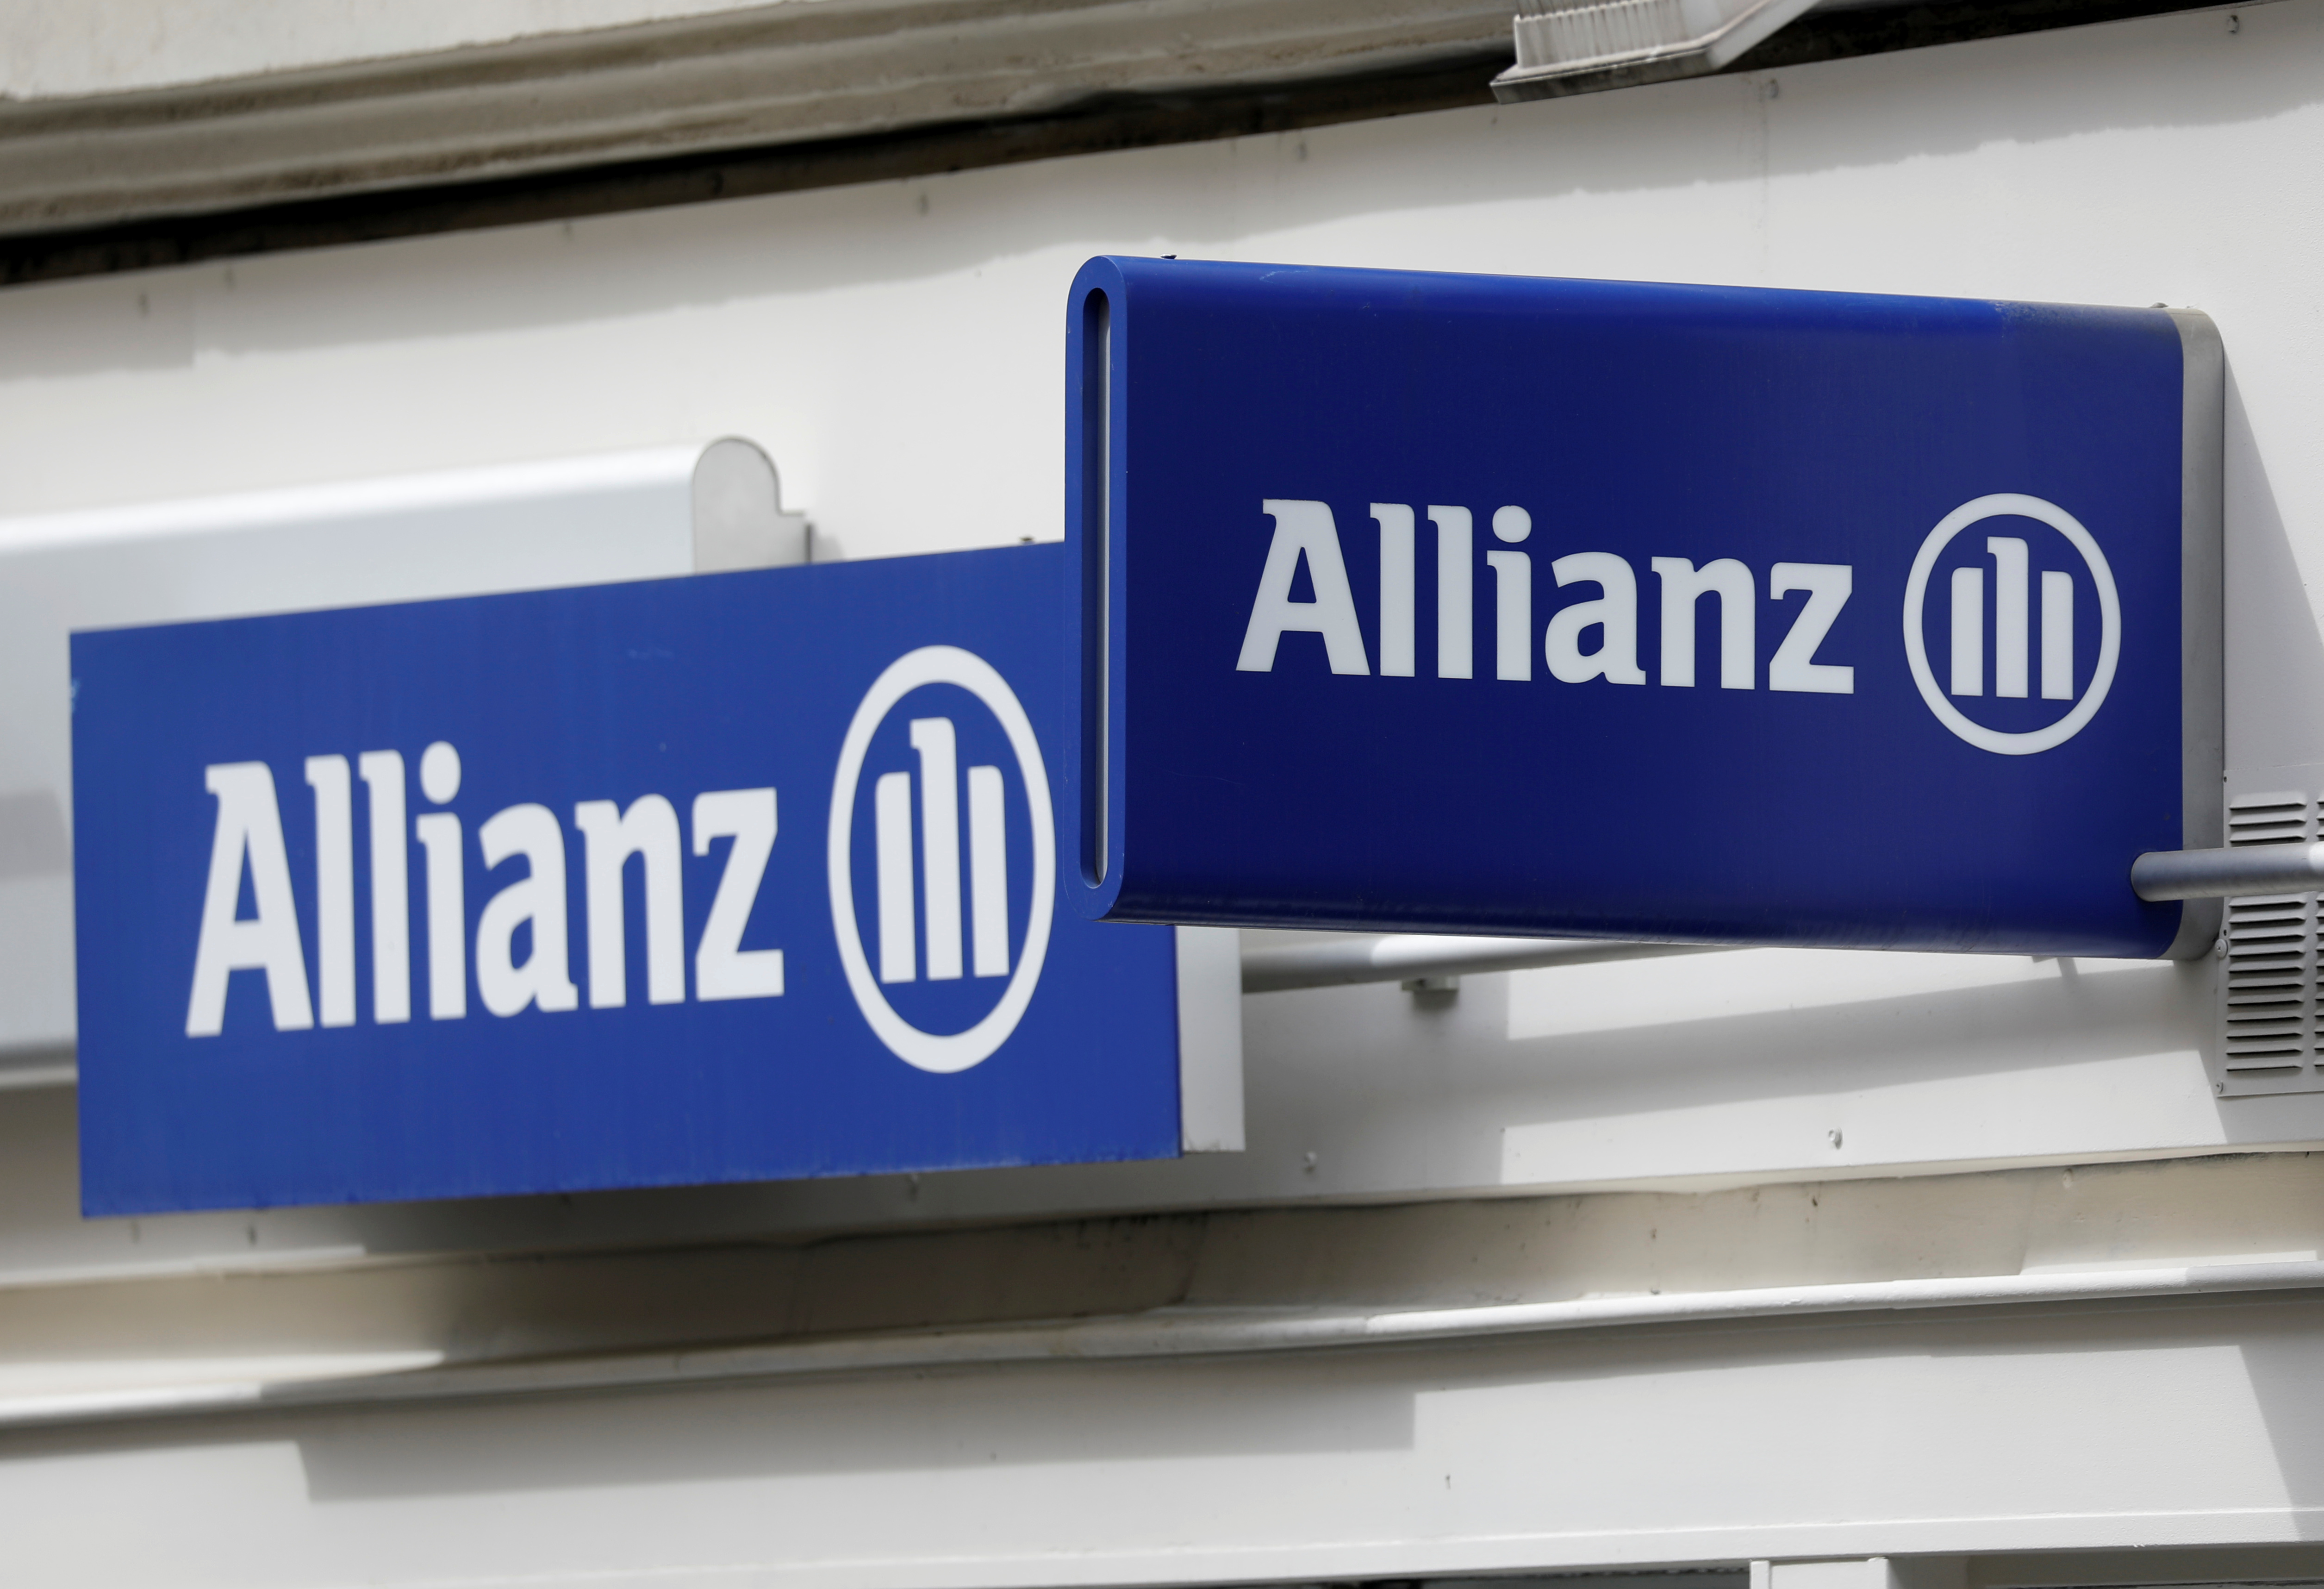 The logo of Allianz is seen on a building in Paris, France, April 30, 2020.  REUTERS/Charles Platiau